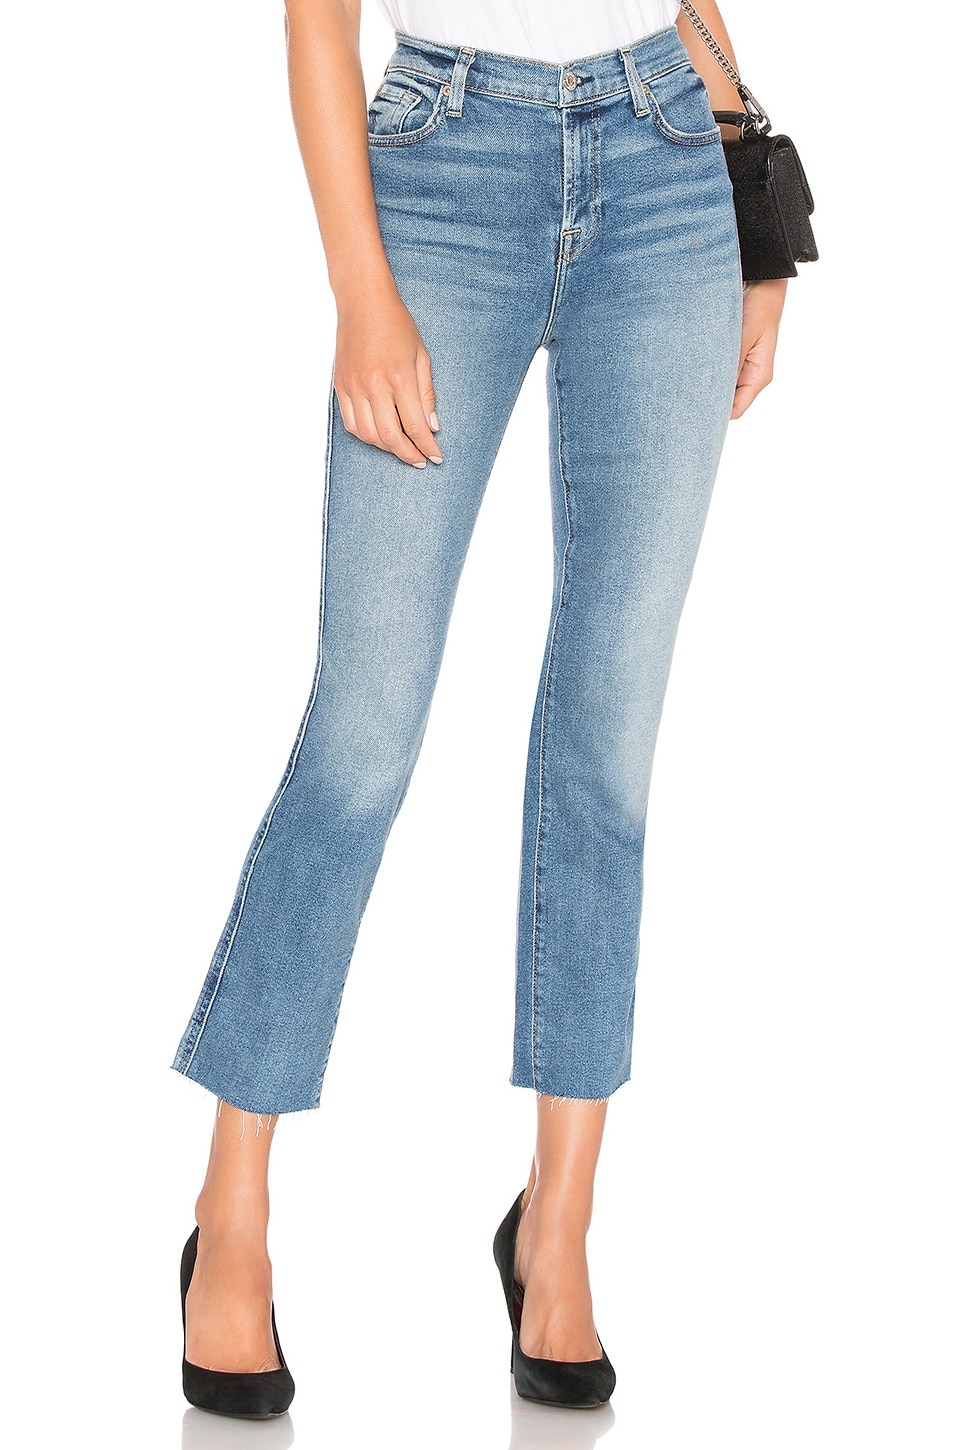 7 For All Mankind Edie Straight Leg in Luxe Vintage Muse